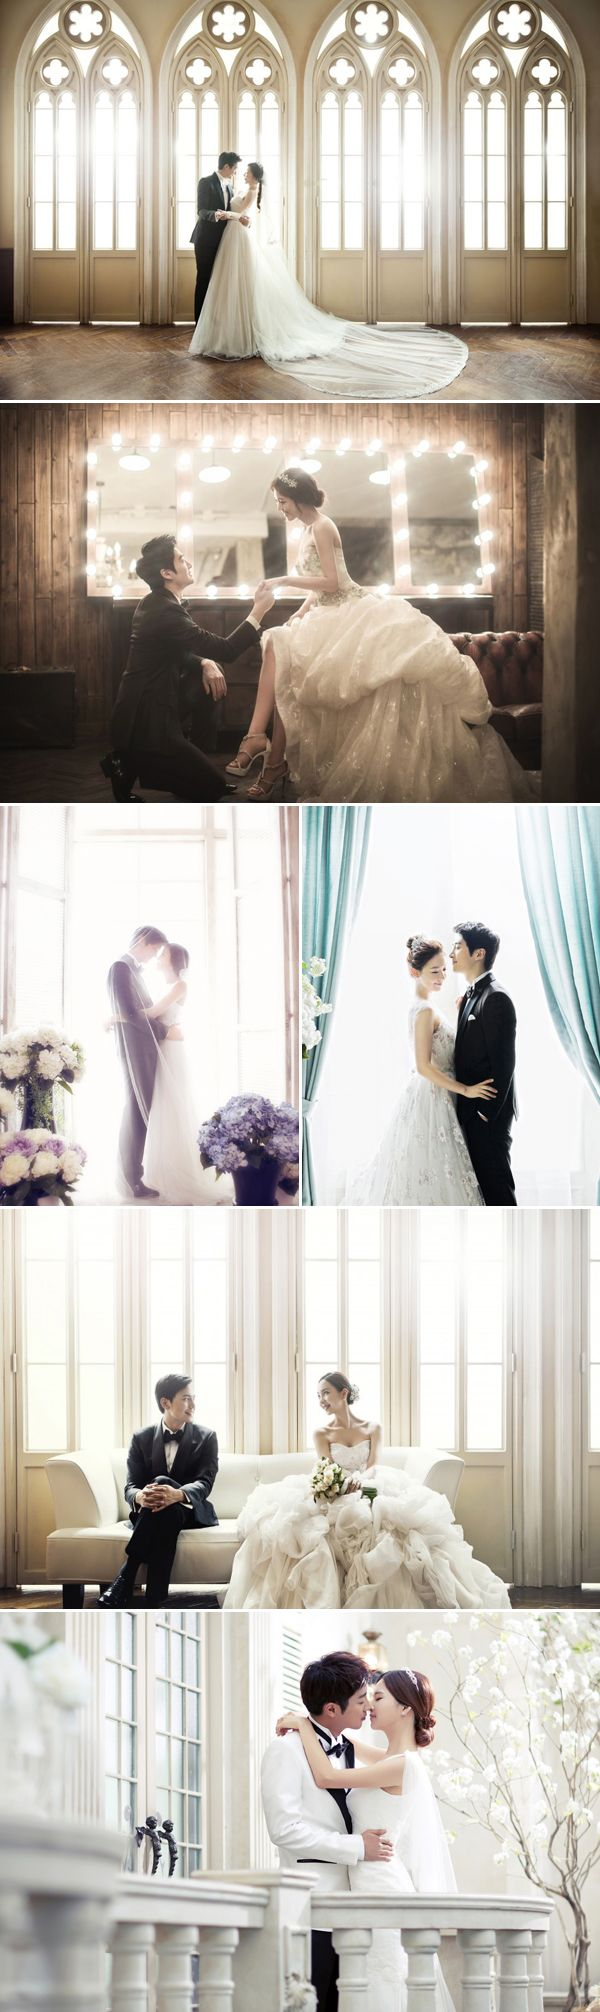 Real Life K-Drama? 30 Dreamy Korean Concept Pre-wedding Photos